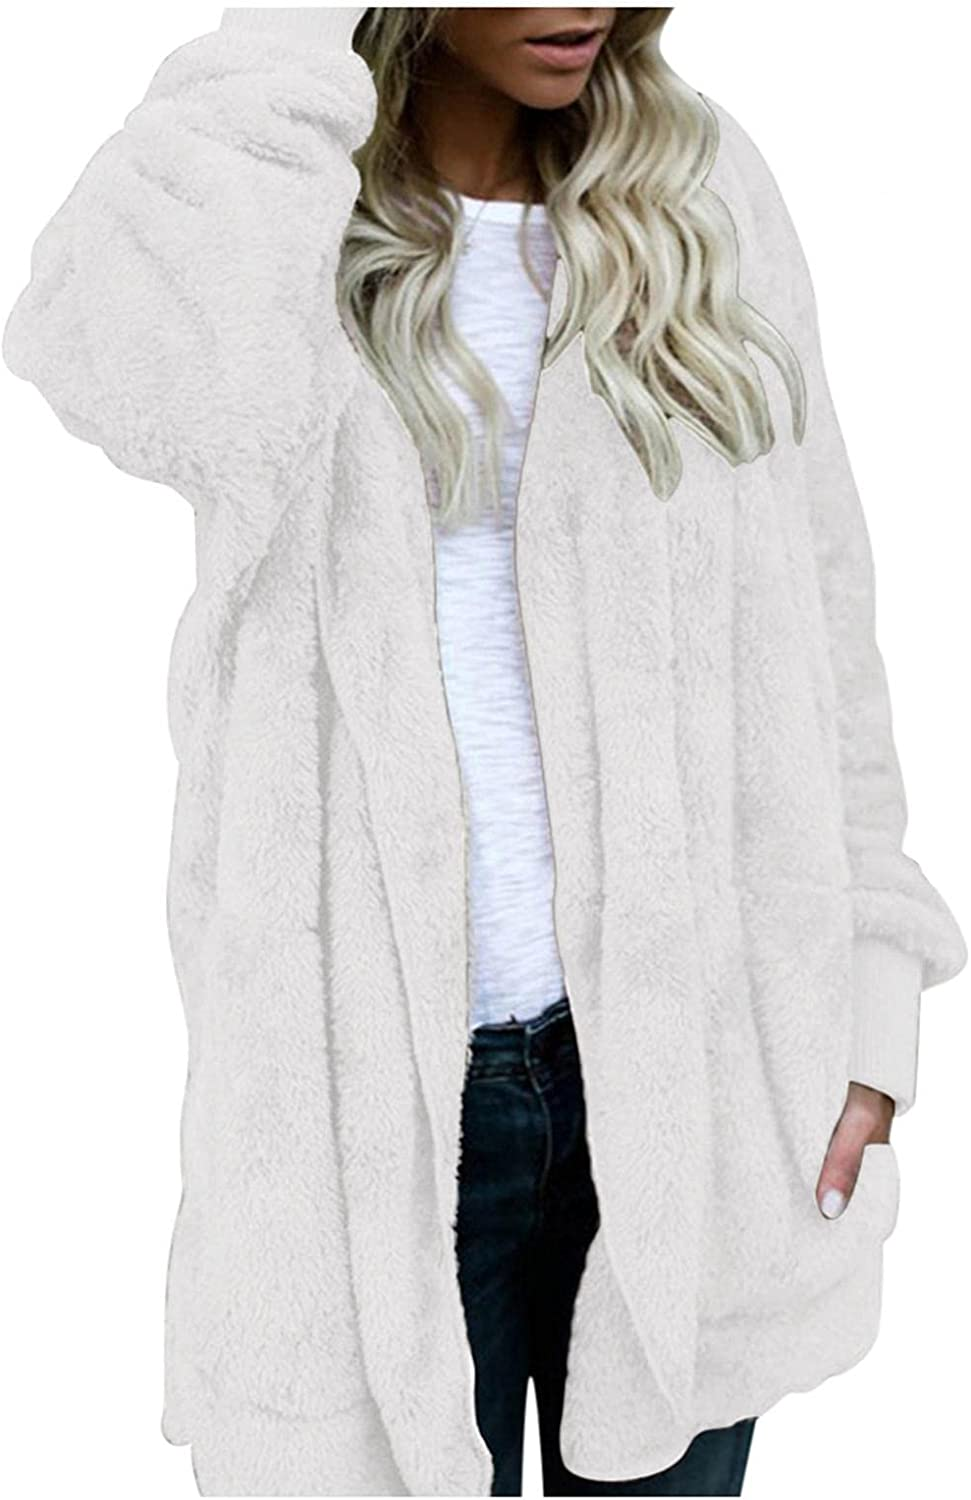 Women's Solid Color Cardigan with Pockets Warm Plush Faux Fuzzy Winter Coat,Mid-Length Double Sided Jacket Plus Size